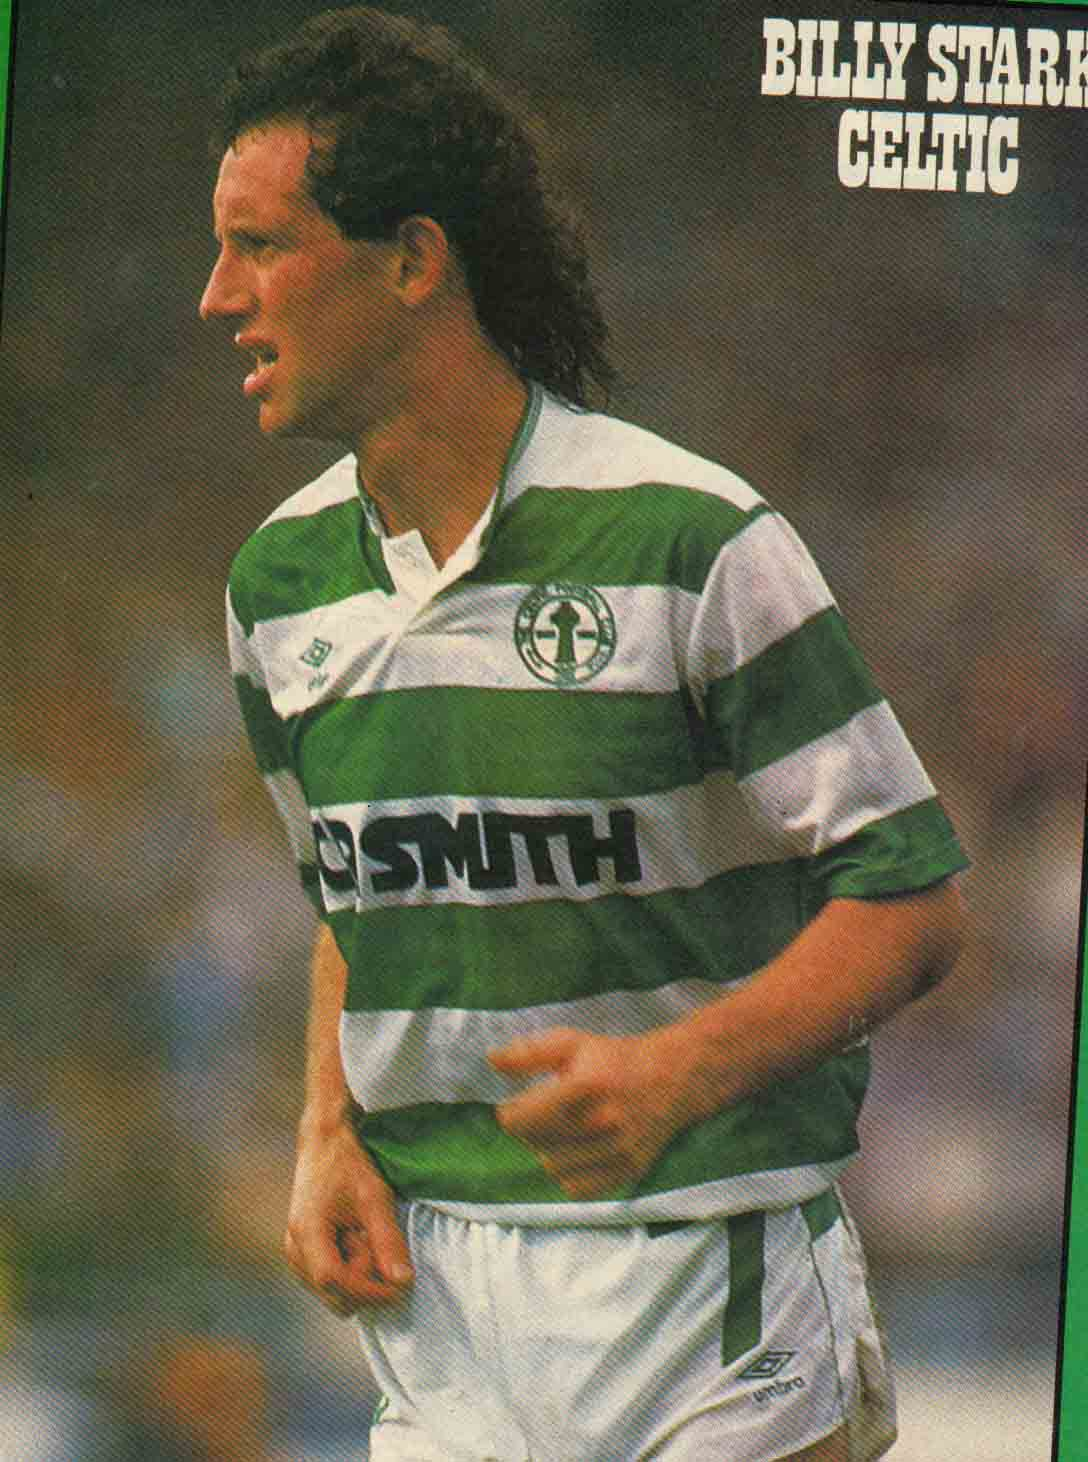 The Bhoy in the Picture – Billy Stark